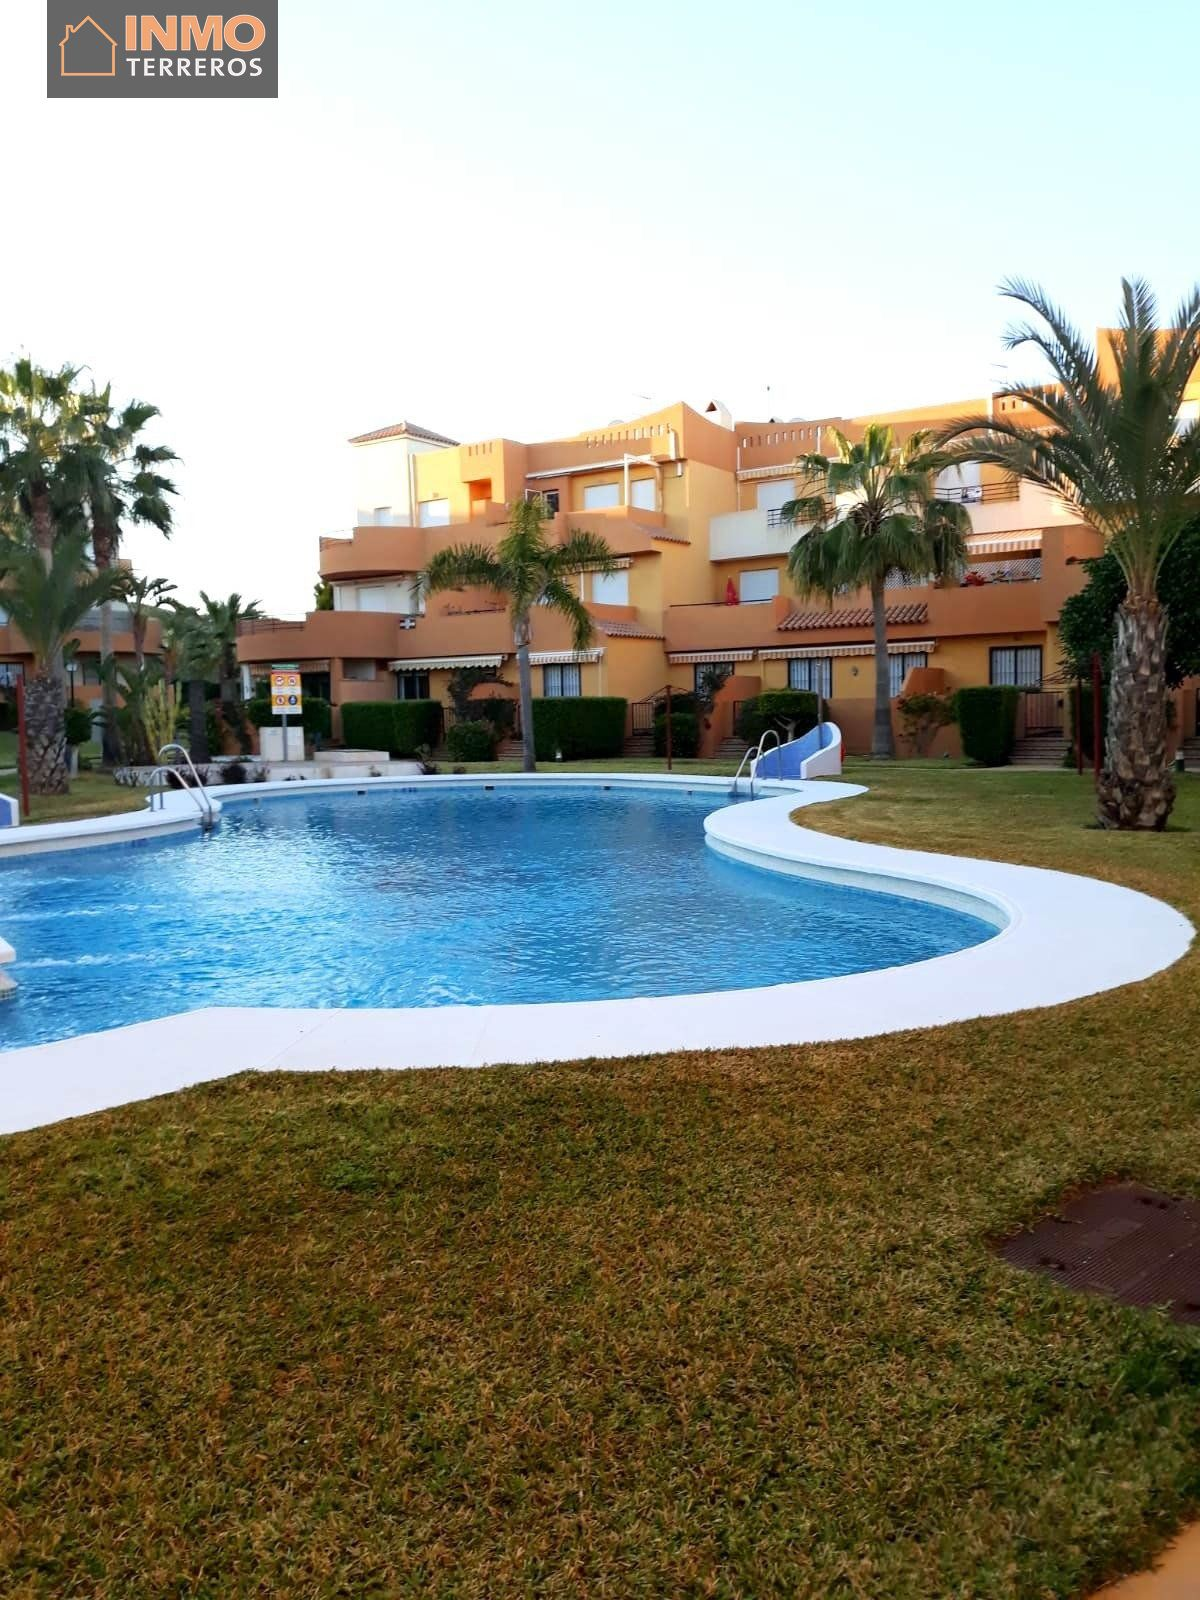 Apartment for sale in Vera Playa - Naturista, Vera